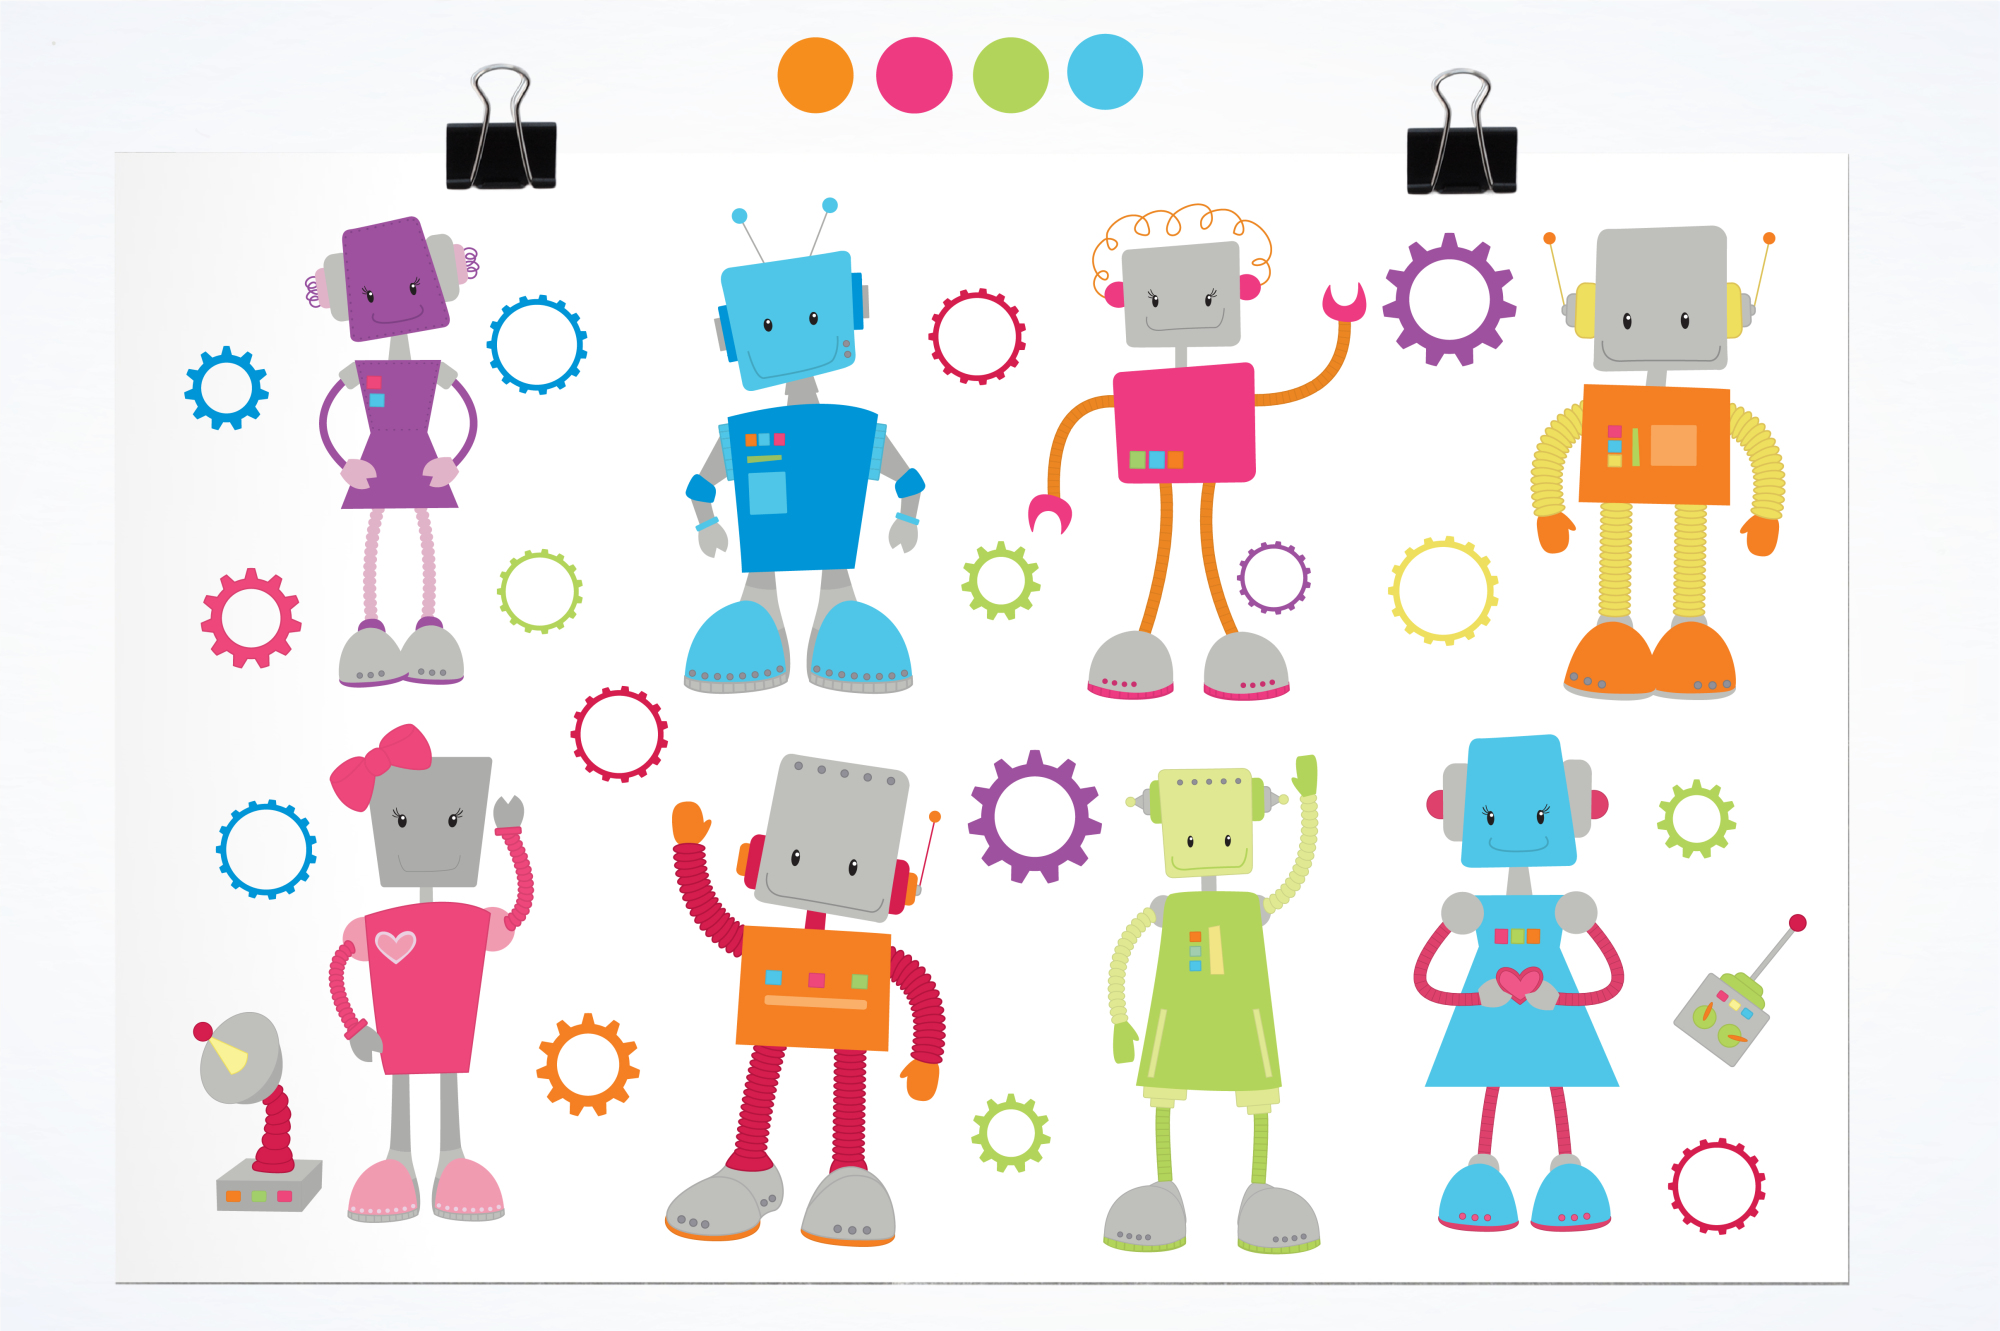 Mr. & Mrs. Roboto graphics and illustrations example image 2